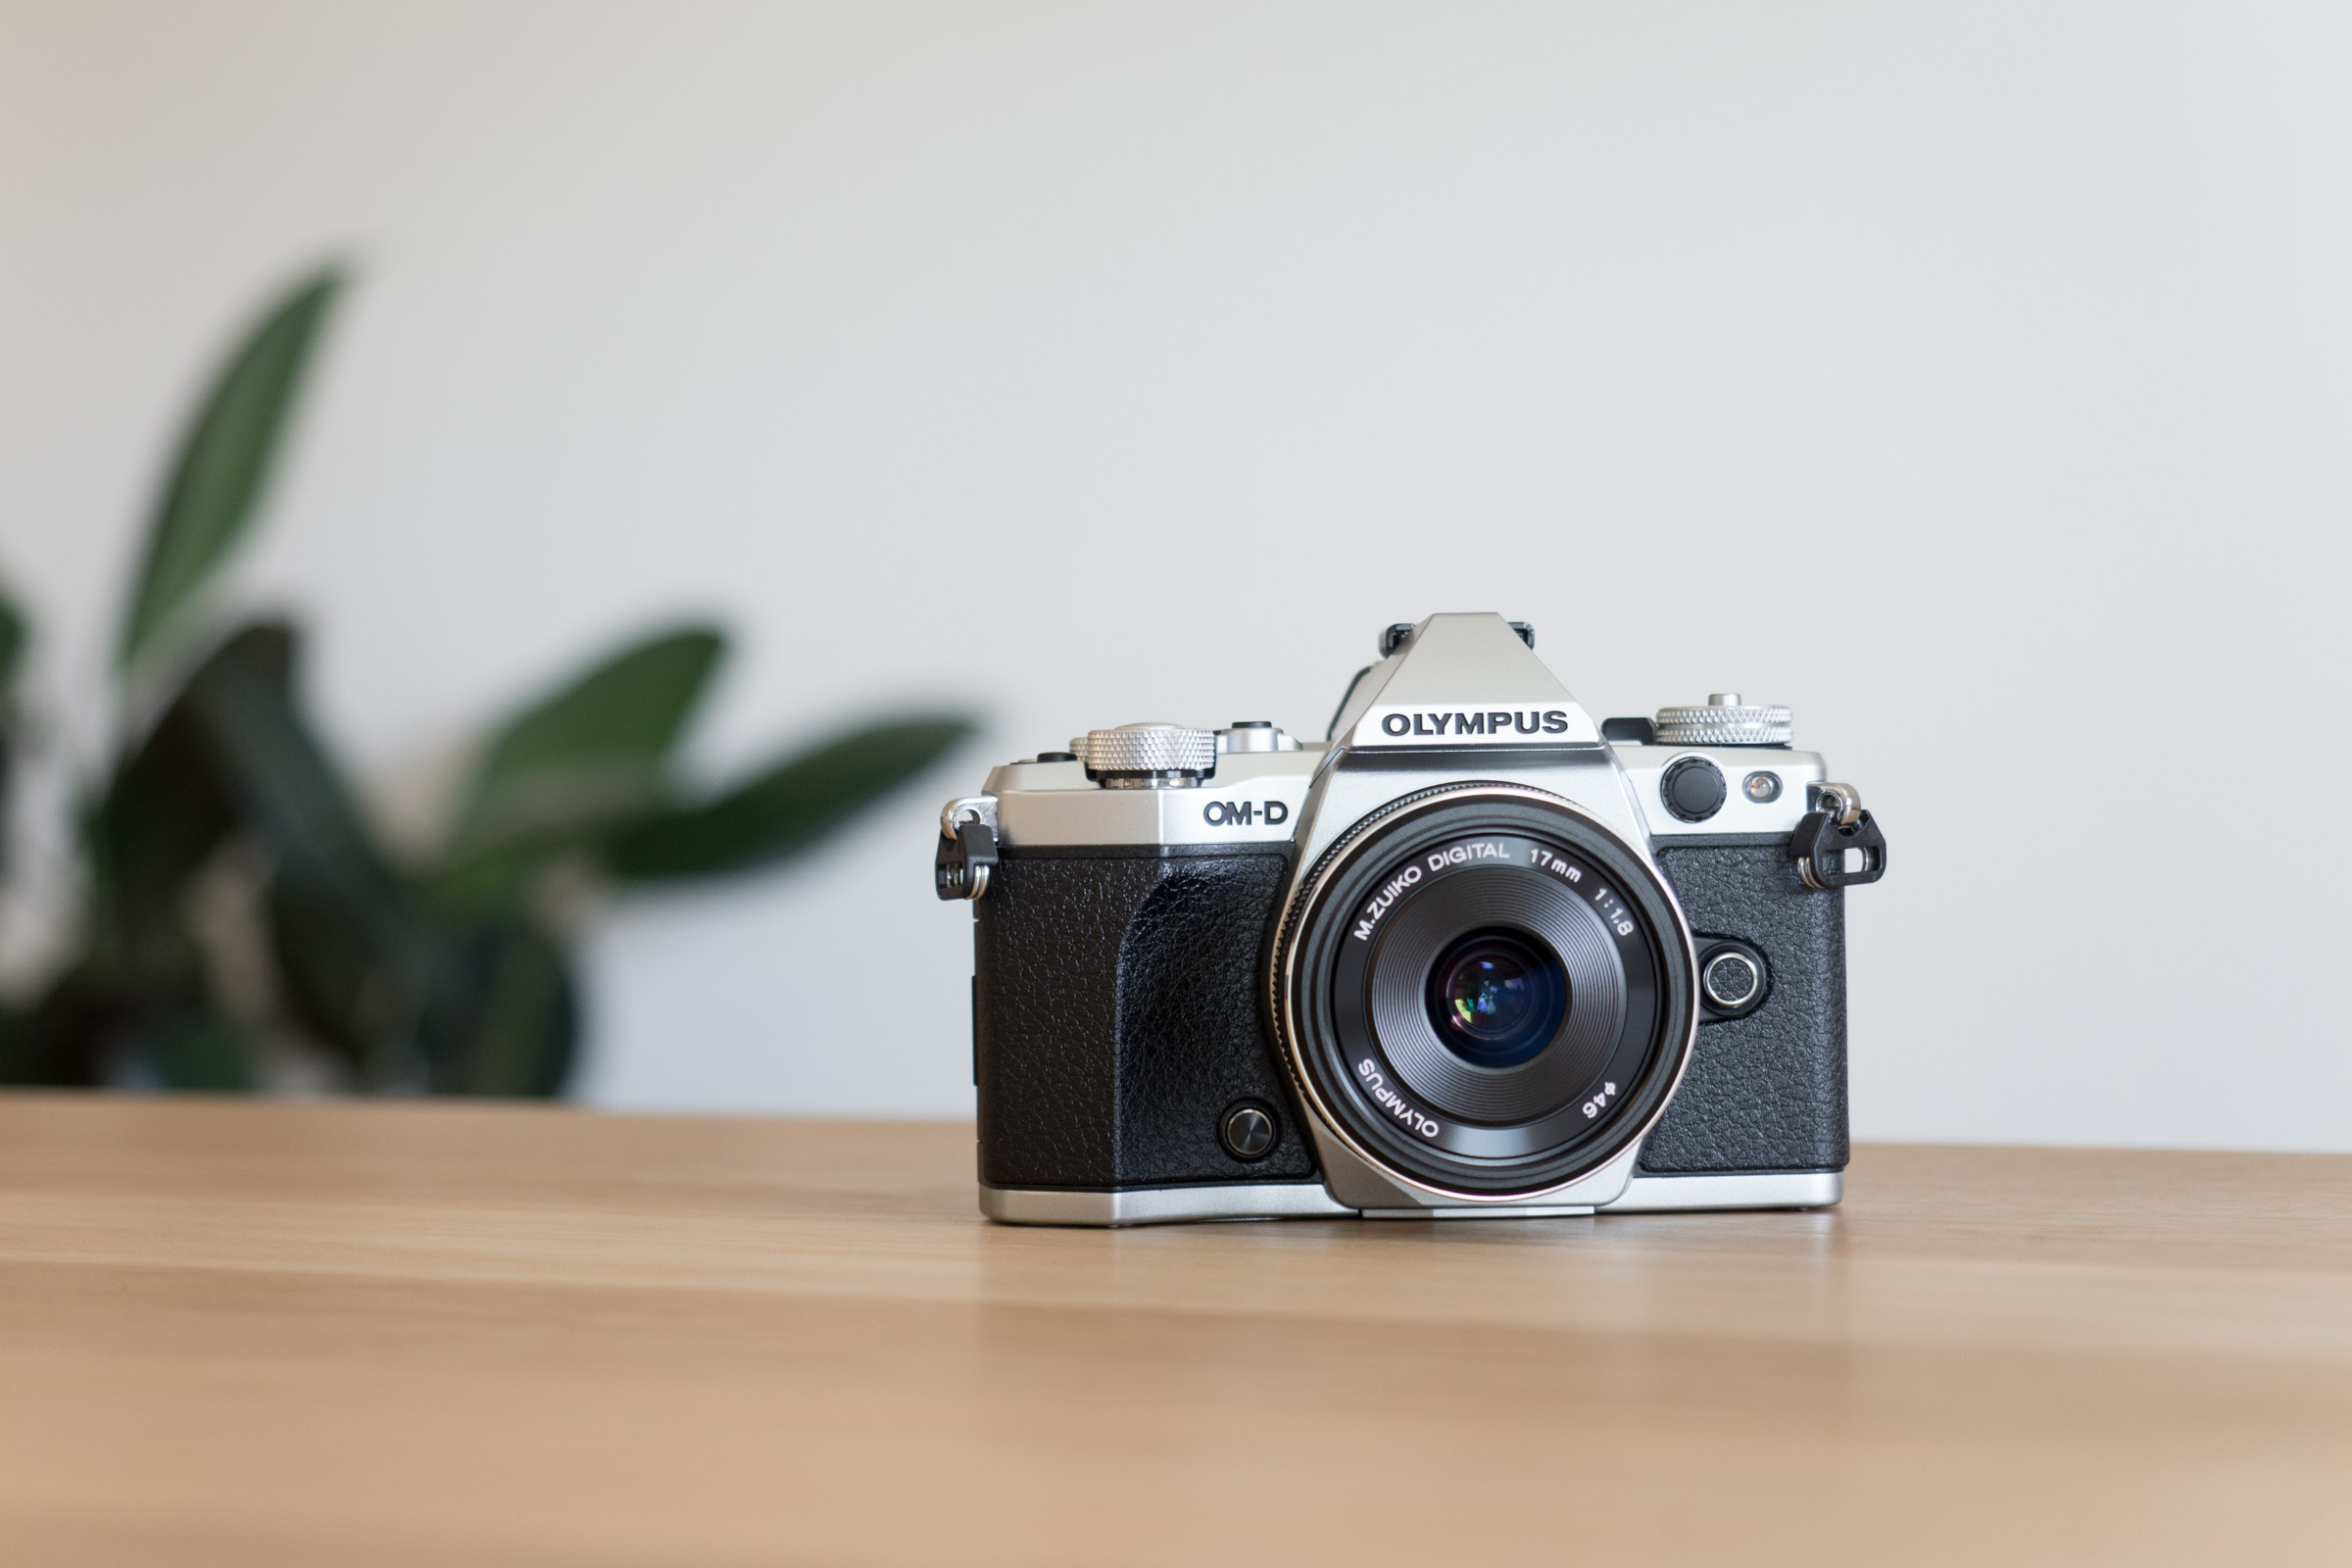 Olympus OM-D E-M5 Mark II Review